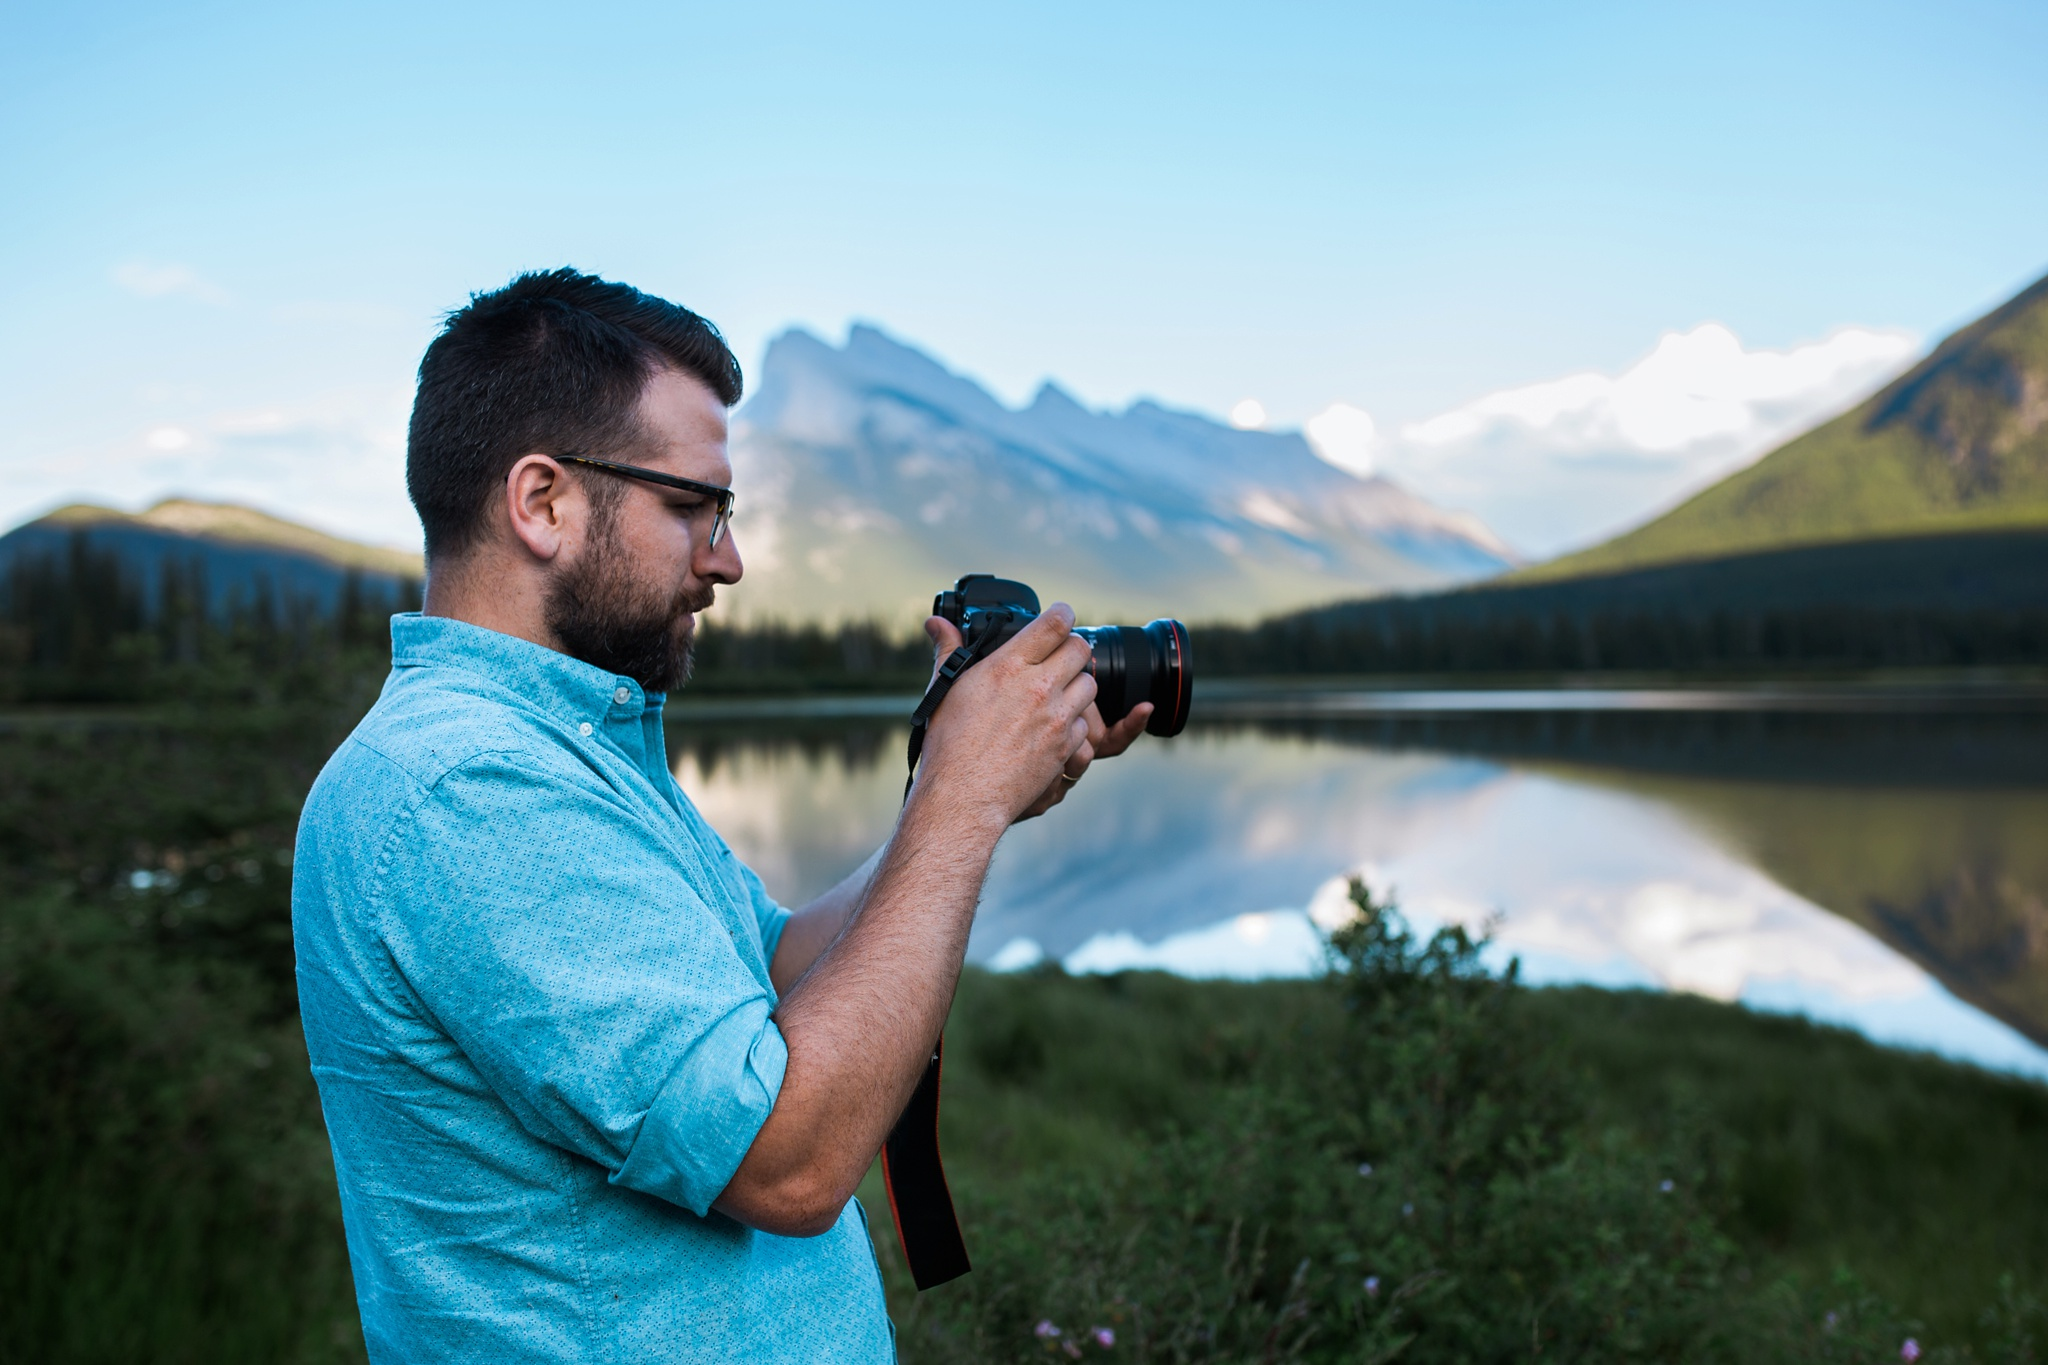 traveling_photographer_calgary_banff_0002.jpg